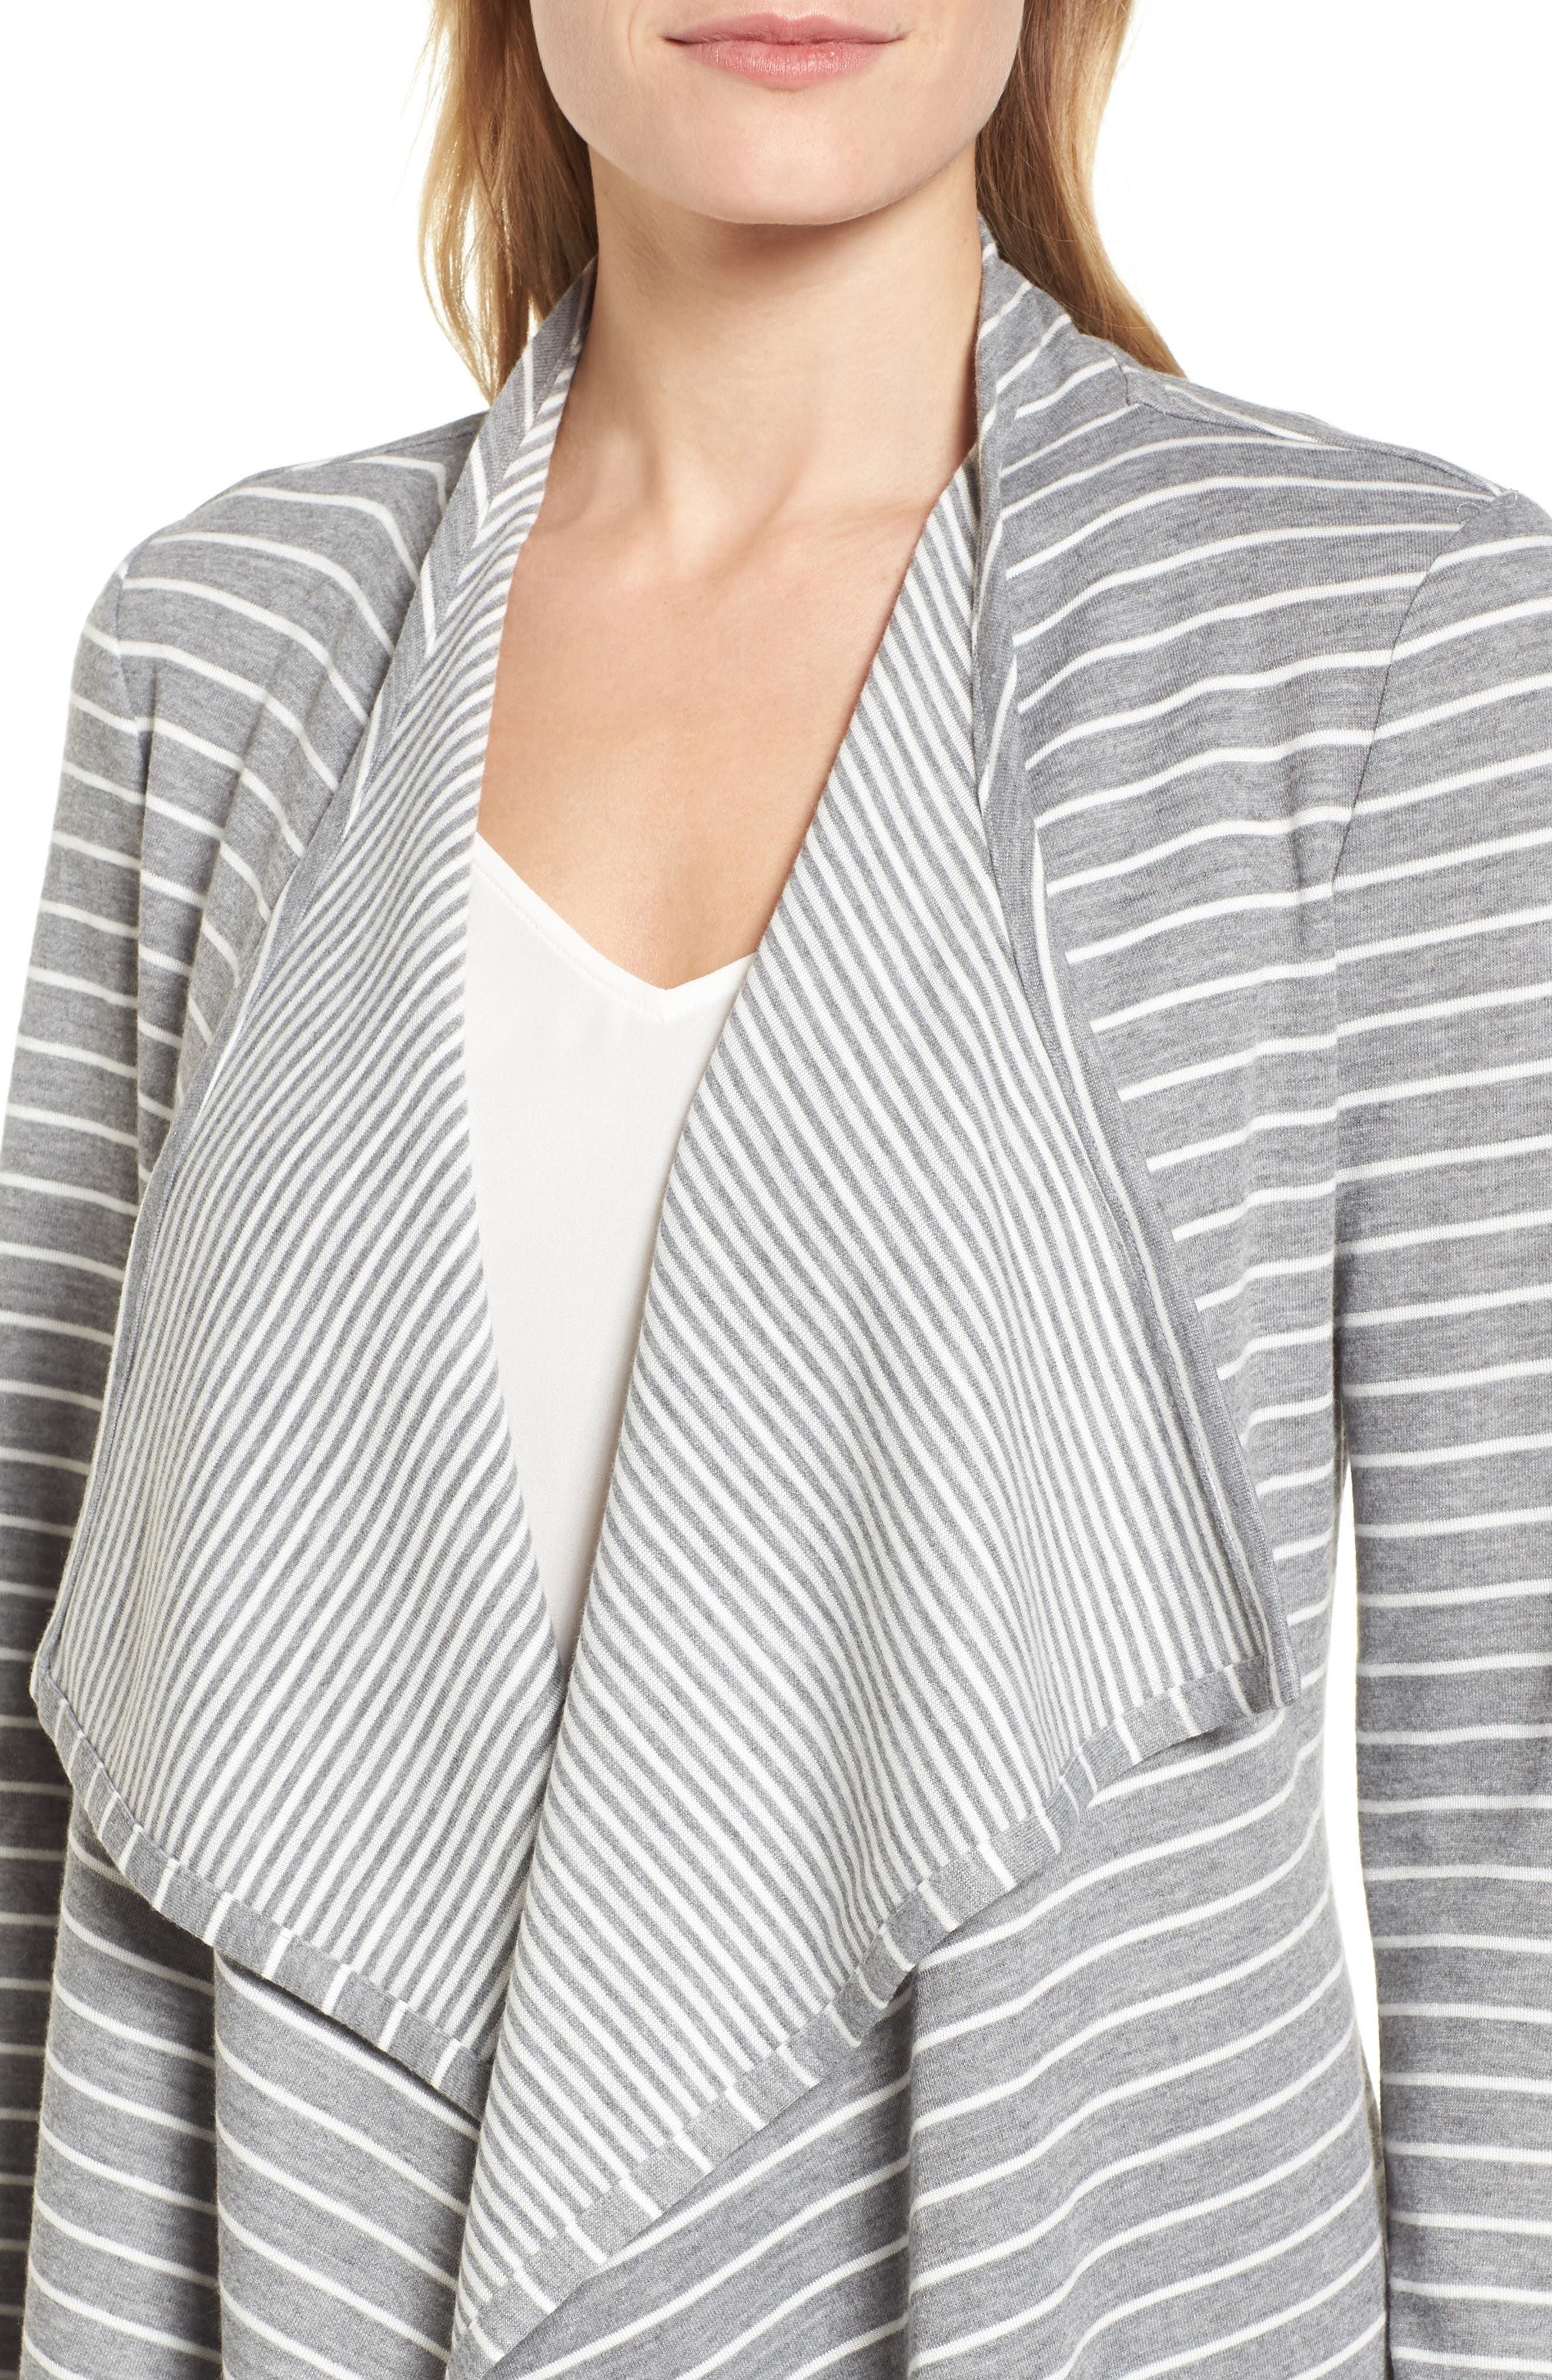 Mixed Stripe Cardigan,                             Alternate thumbnail 4, color,                             050-Grey Heather